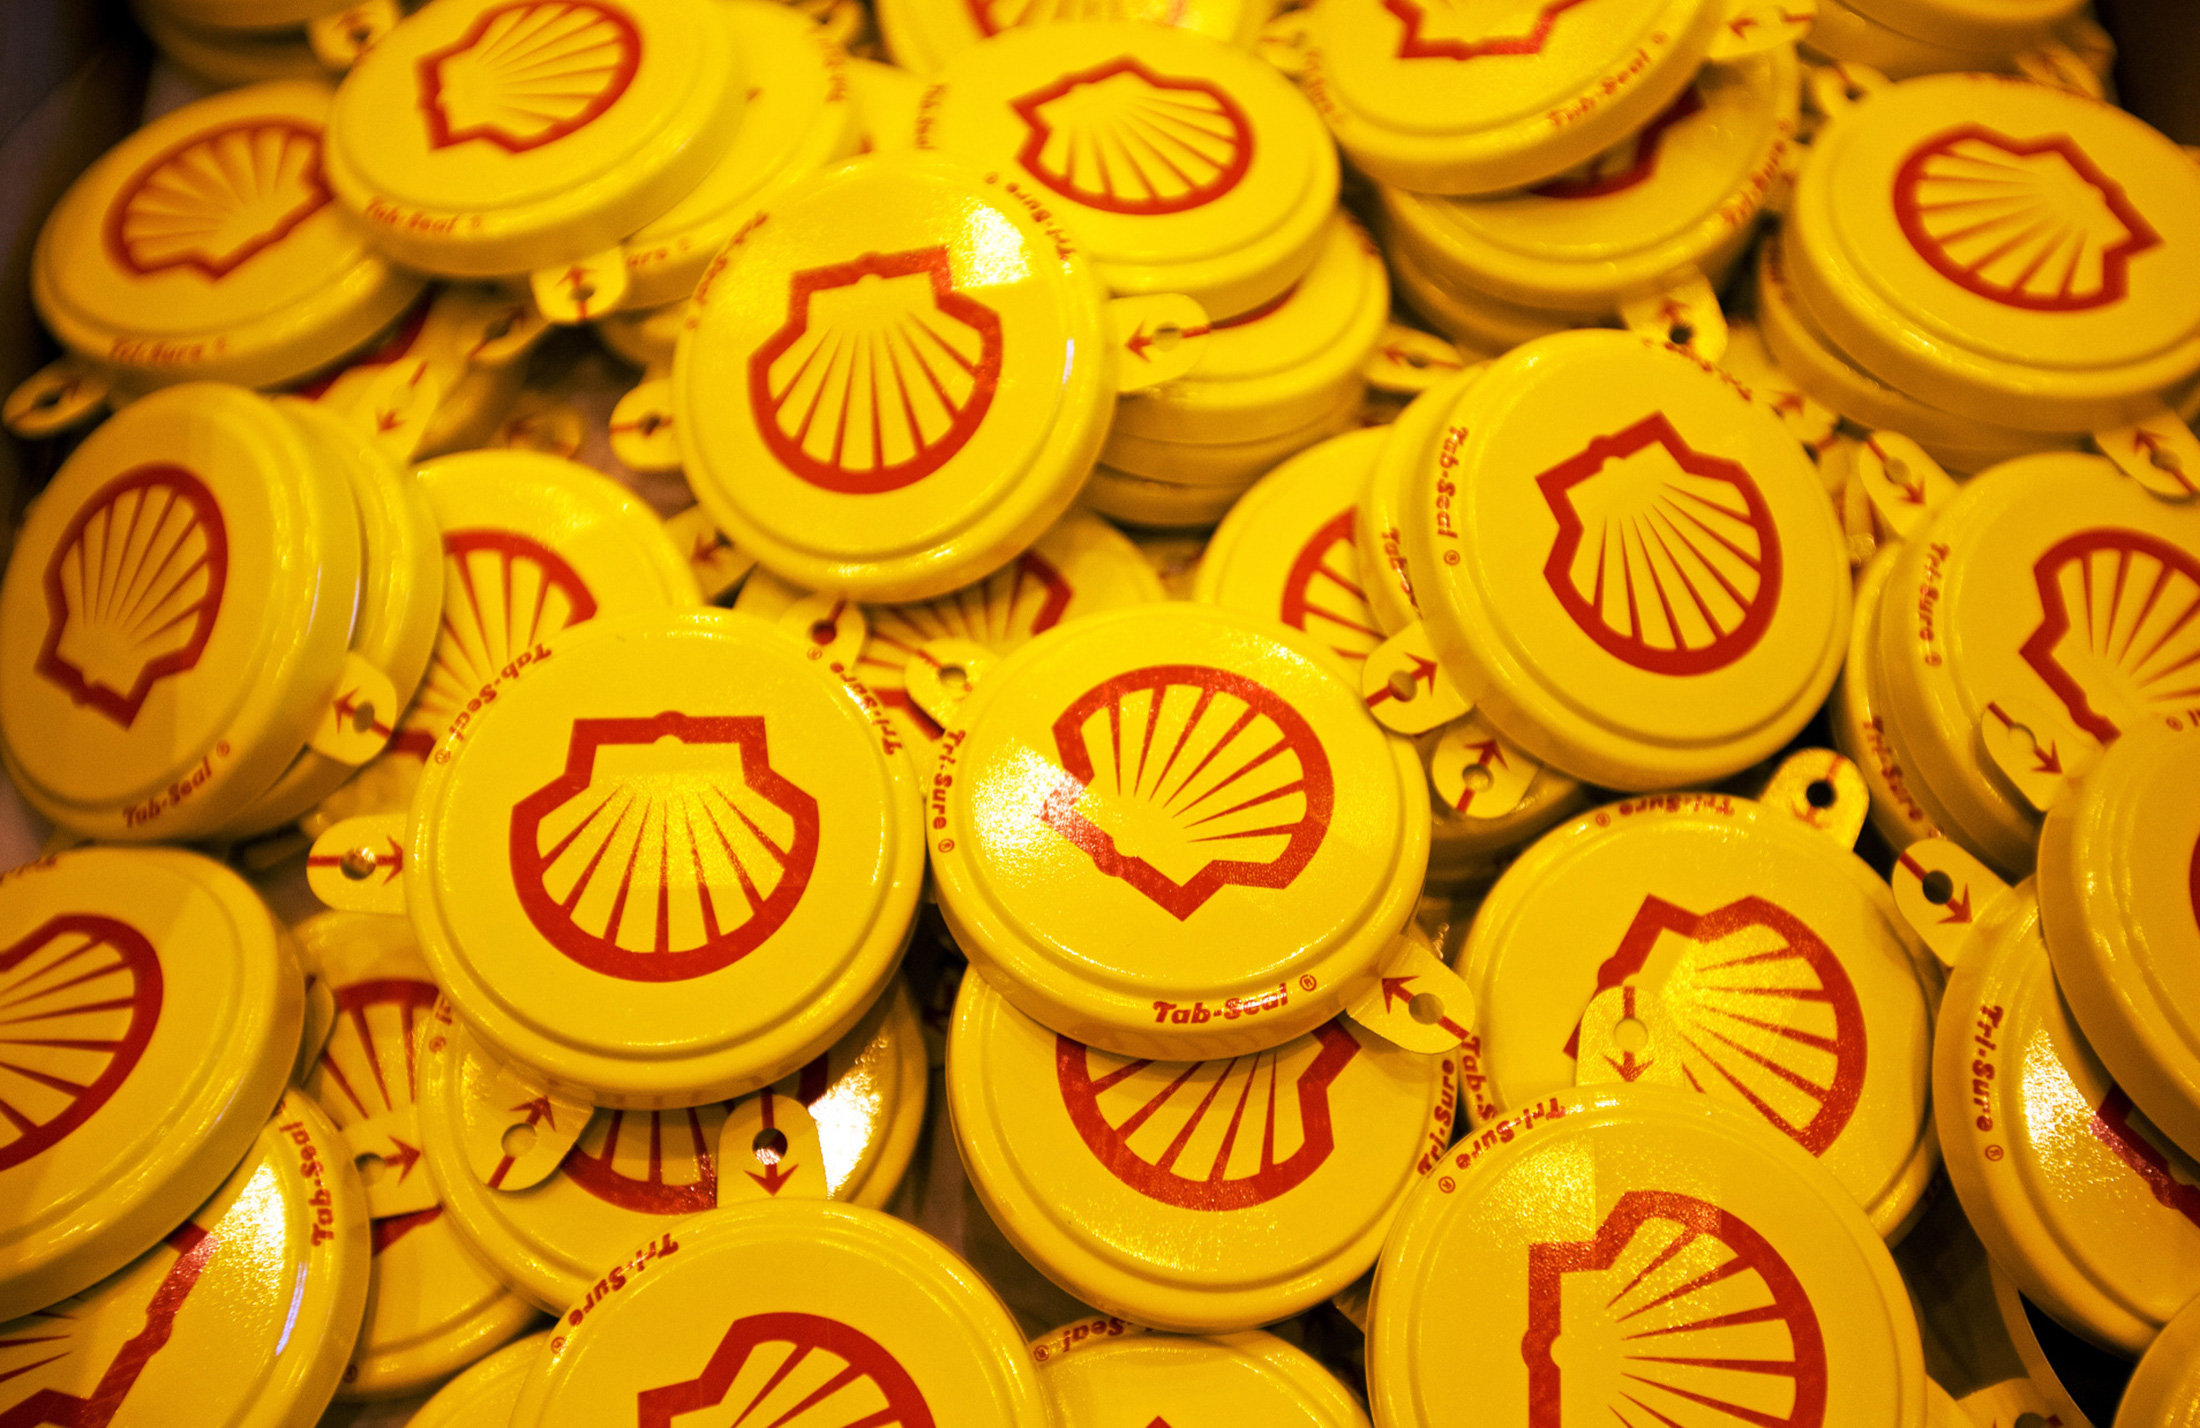 Shell Cuts Debt With $7.25 Billion Sale of Canada Oil Sands